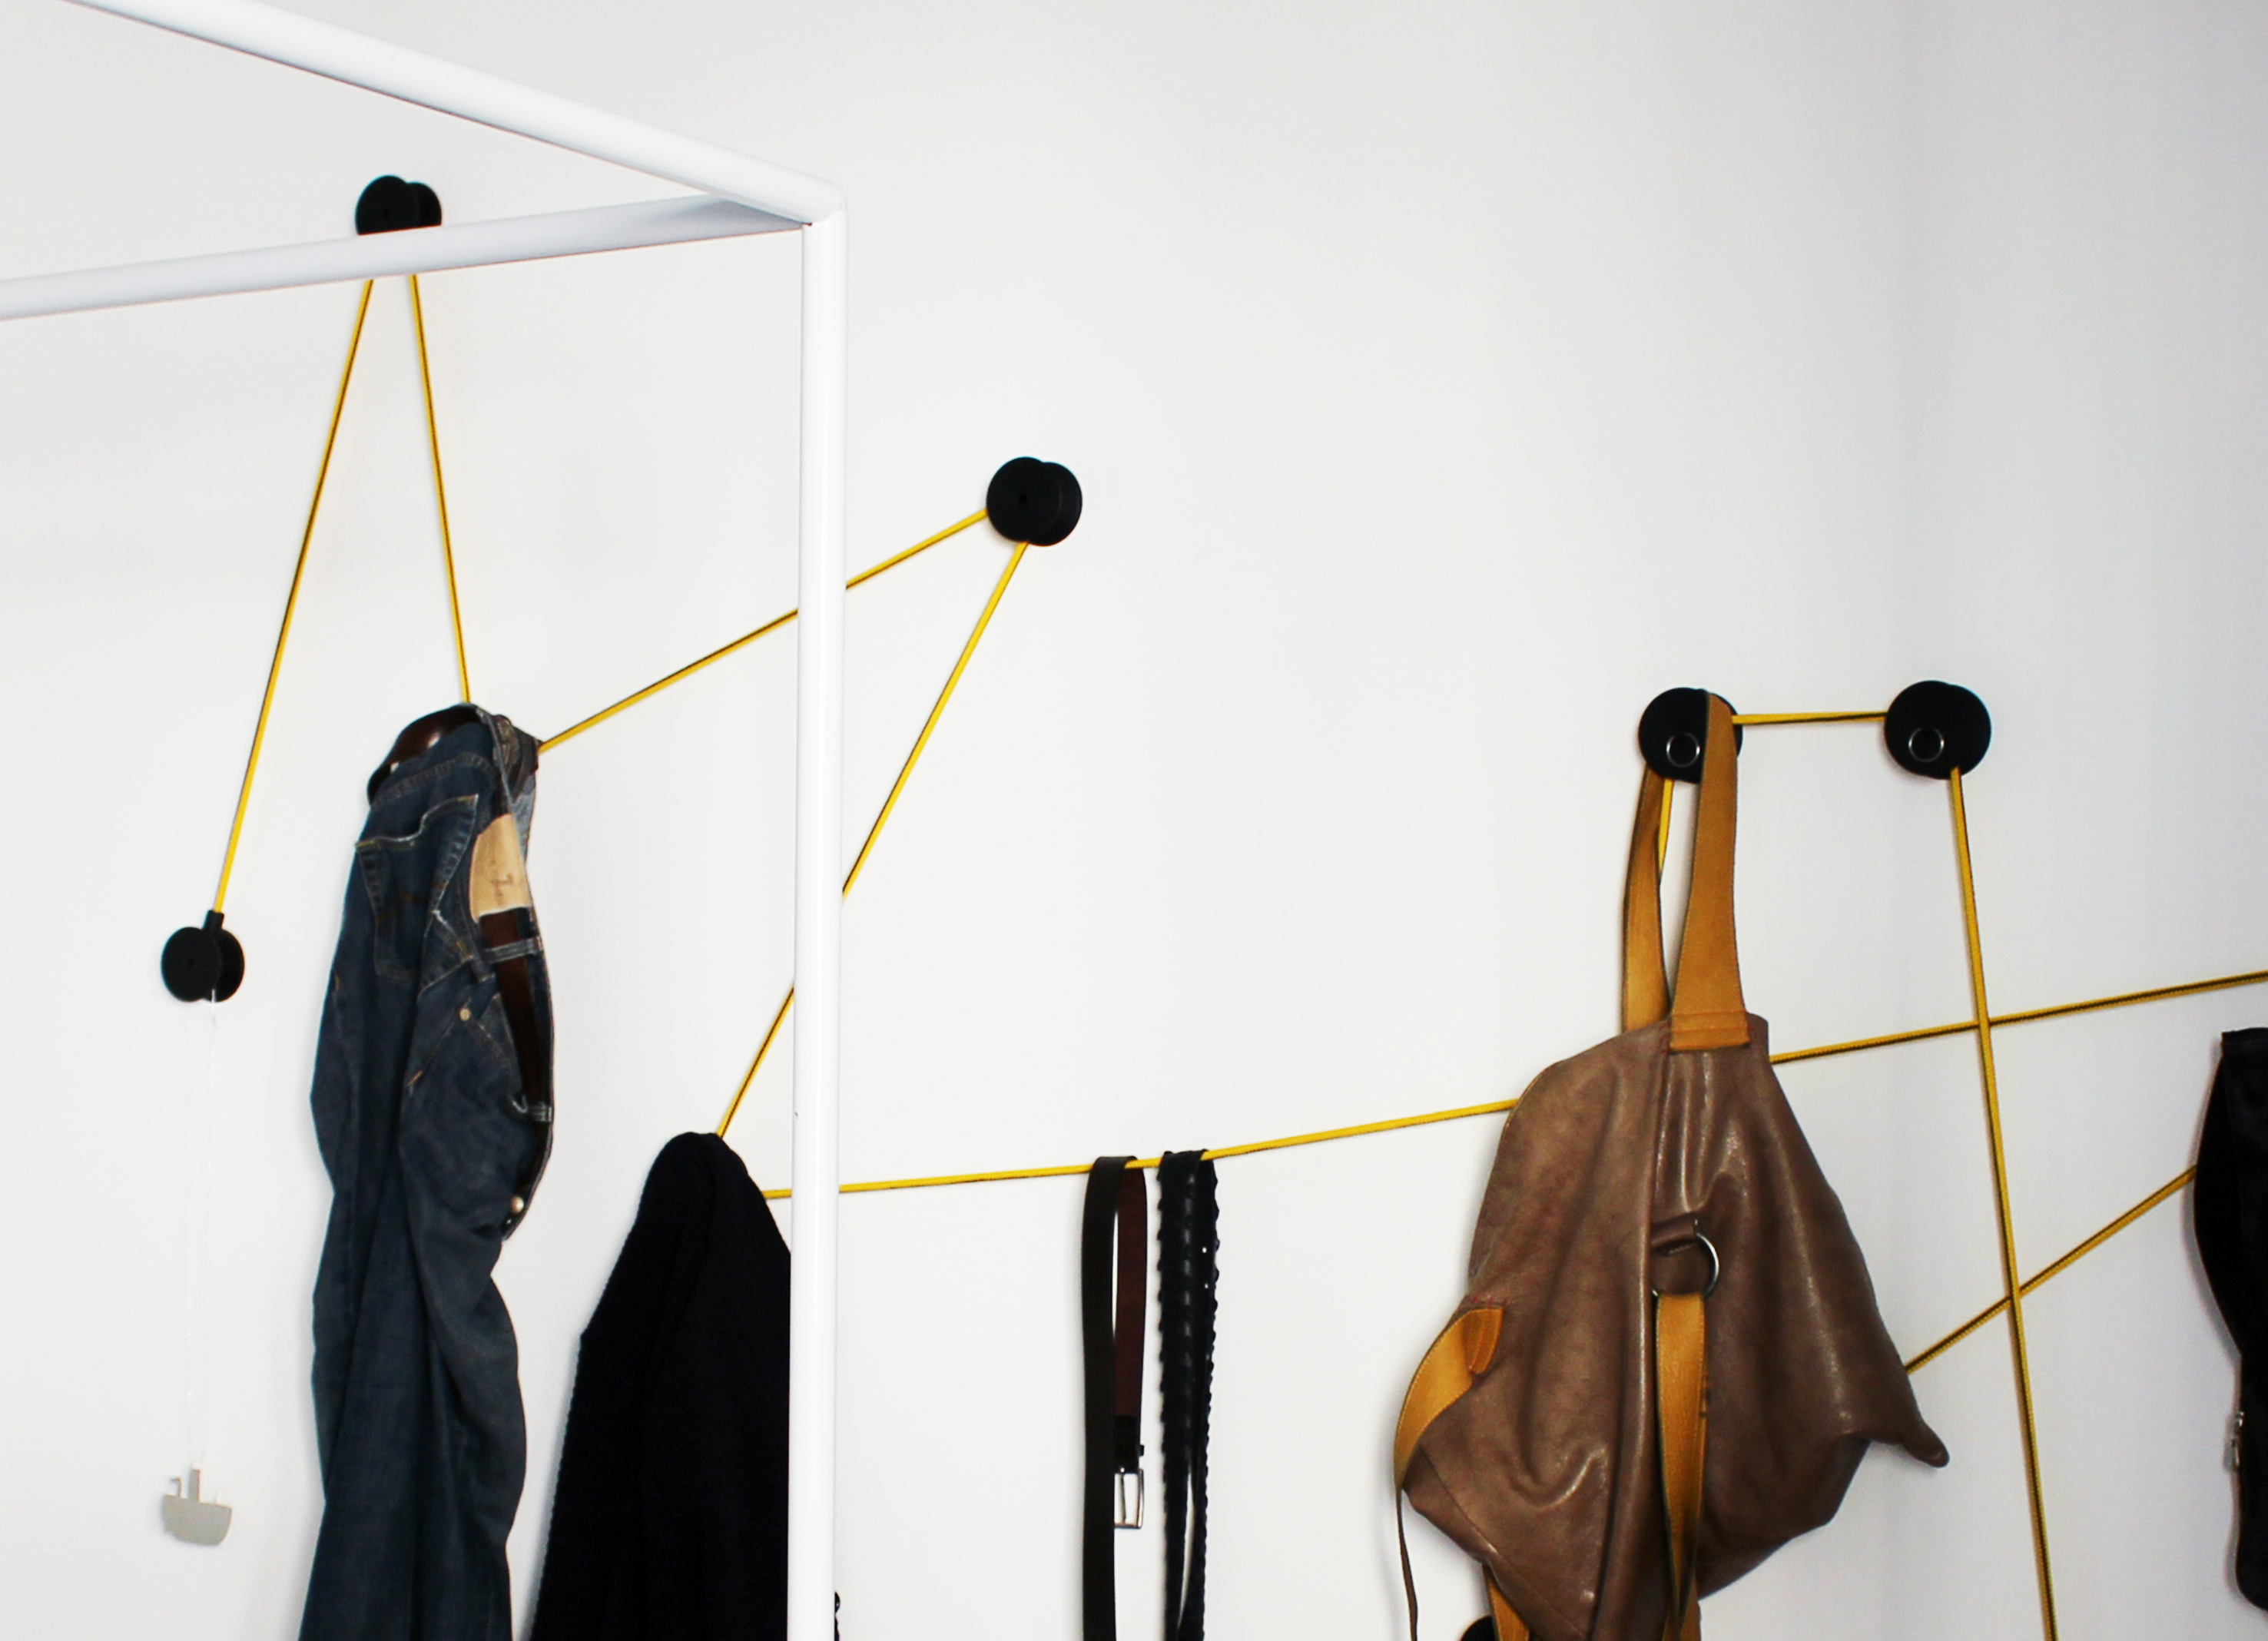 tit black coat hook in pvc and keychain with bag and jeans on the elastic rope